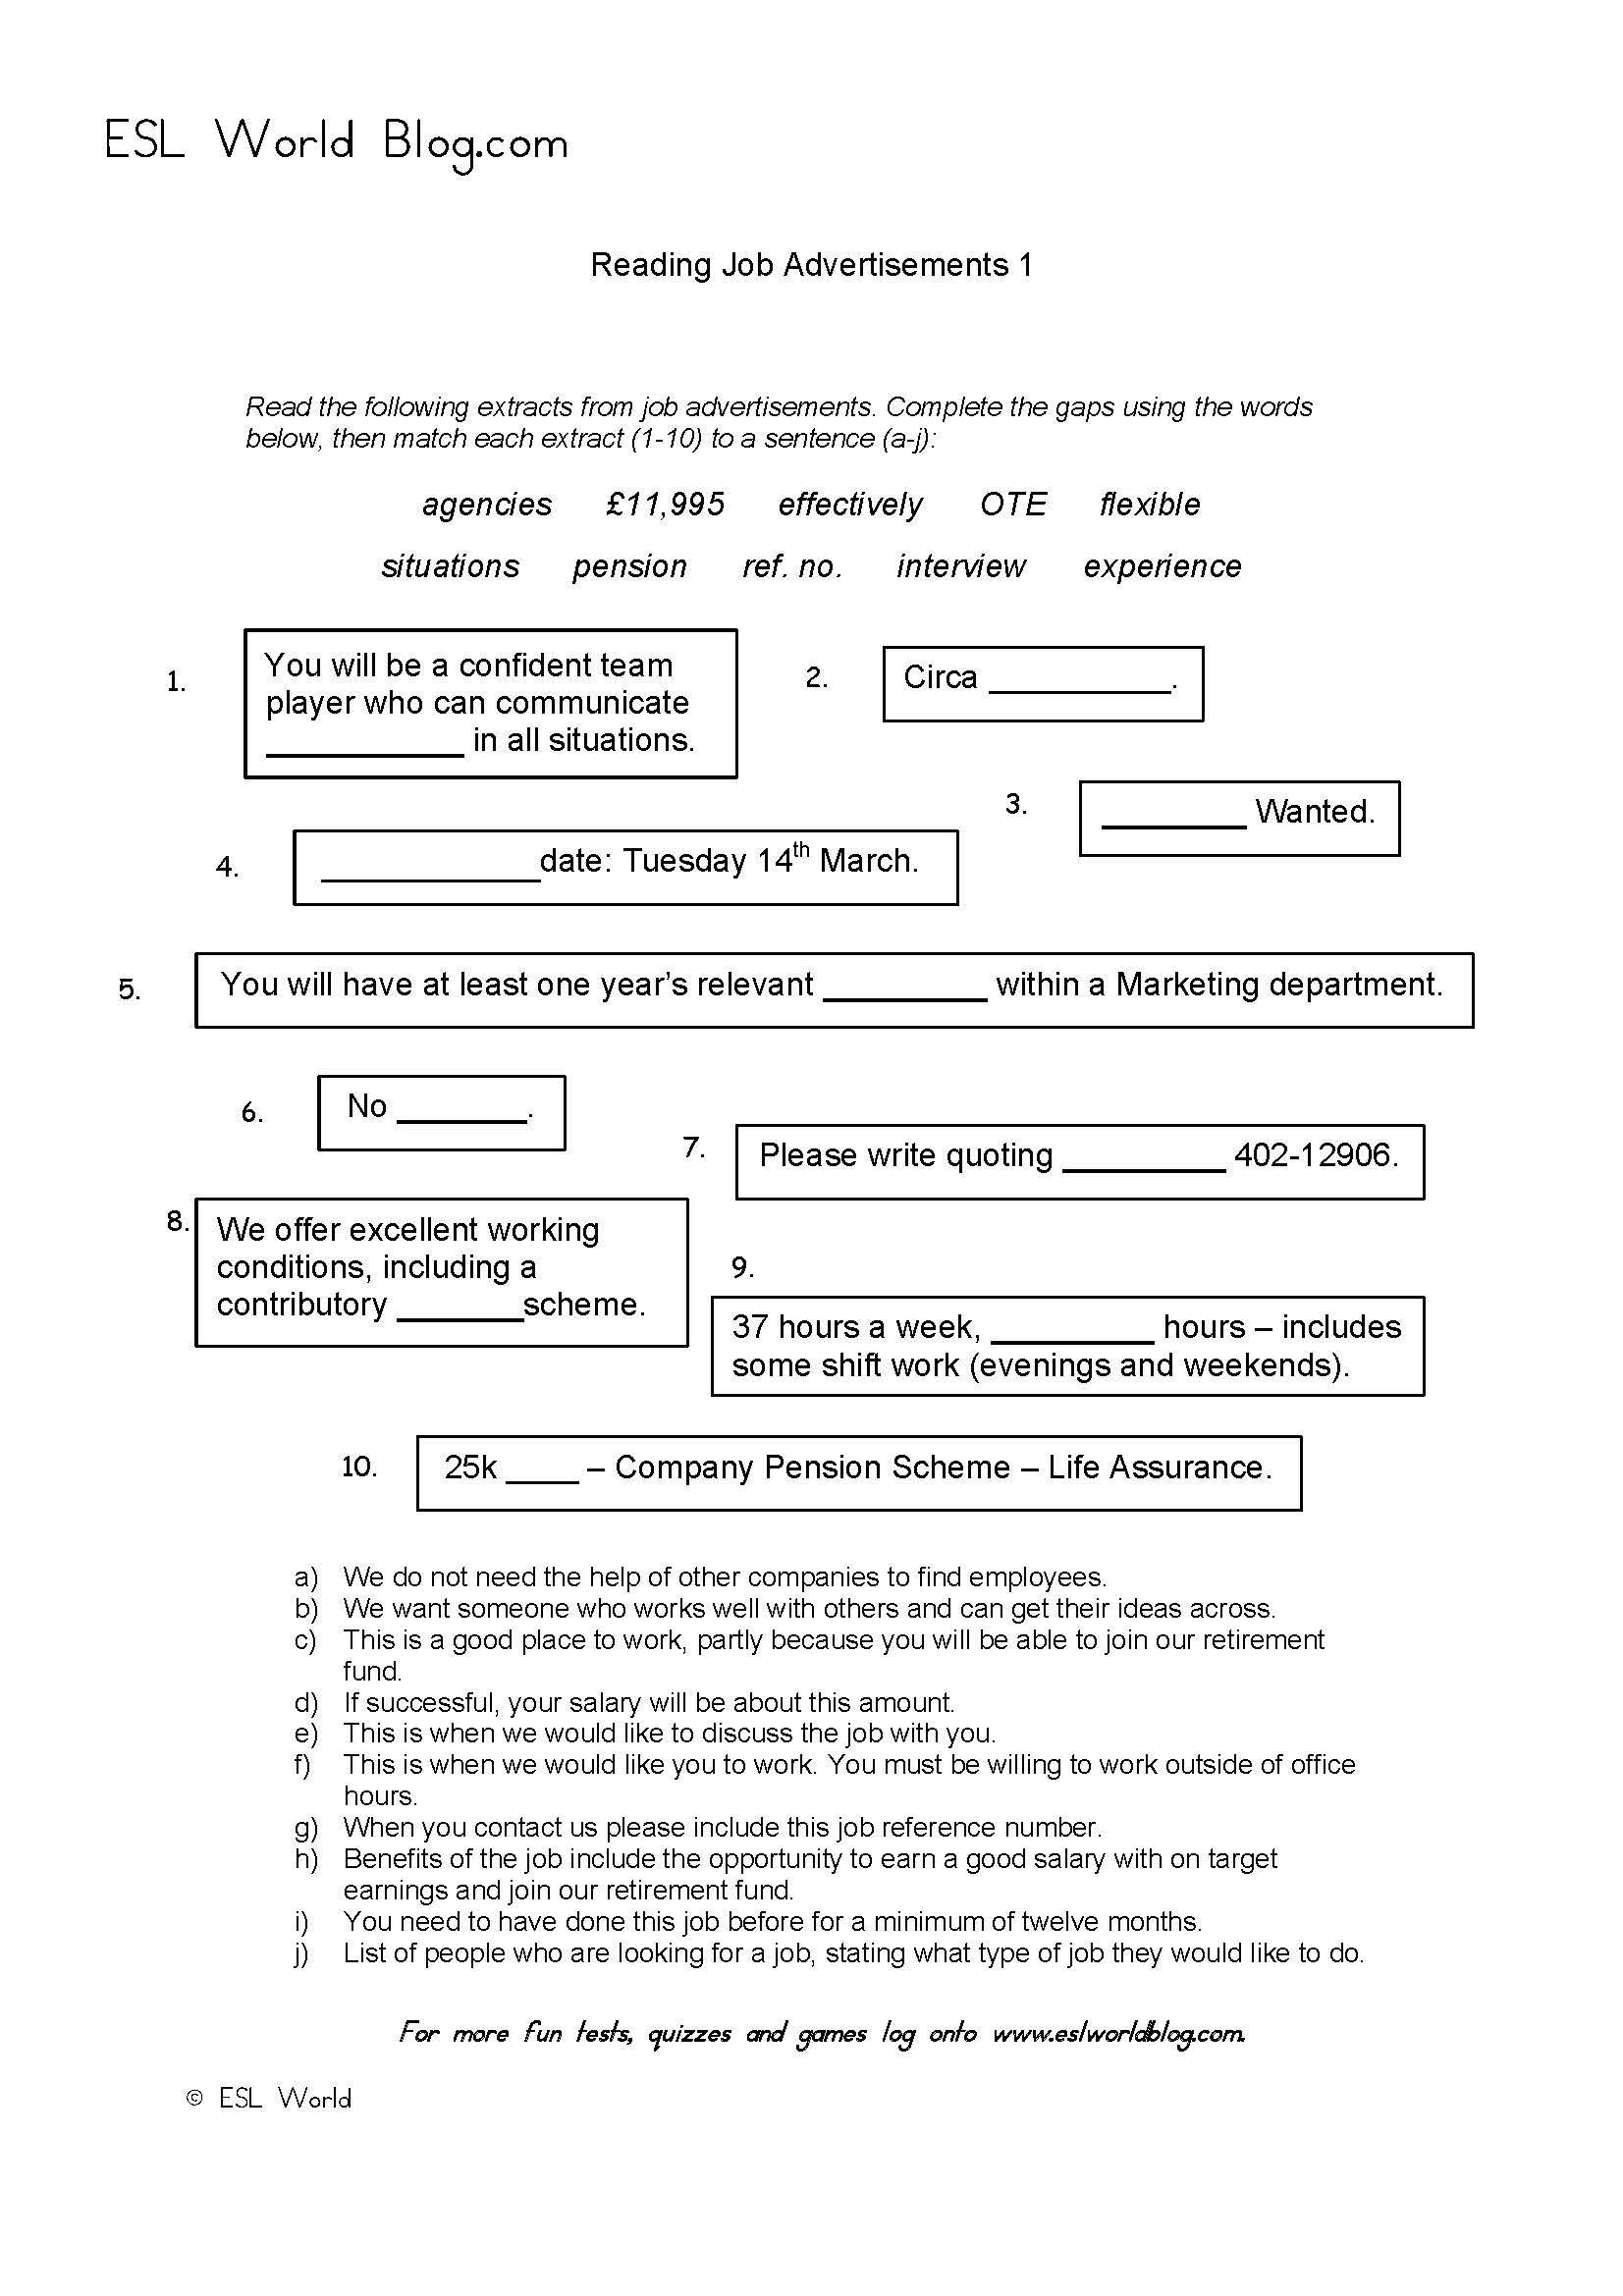 Reading Job Advertisements Activity Sheets A Quick